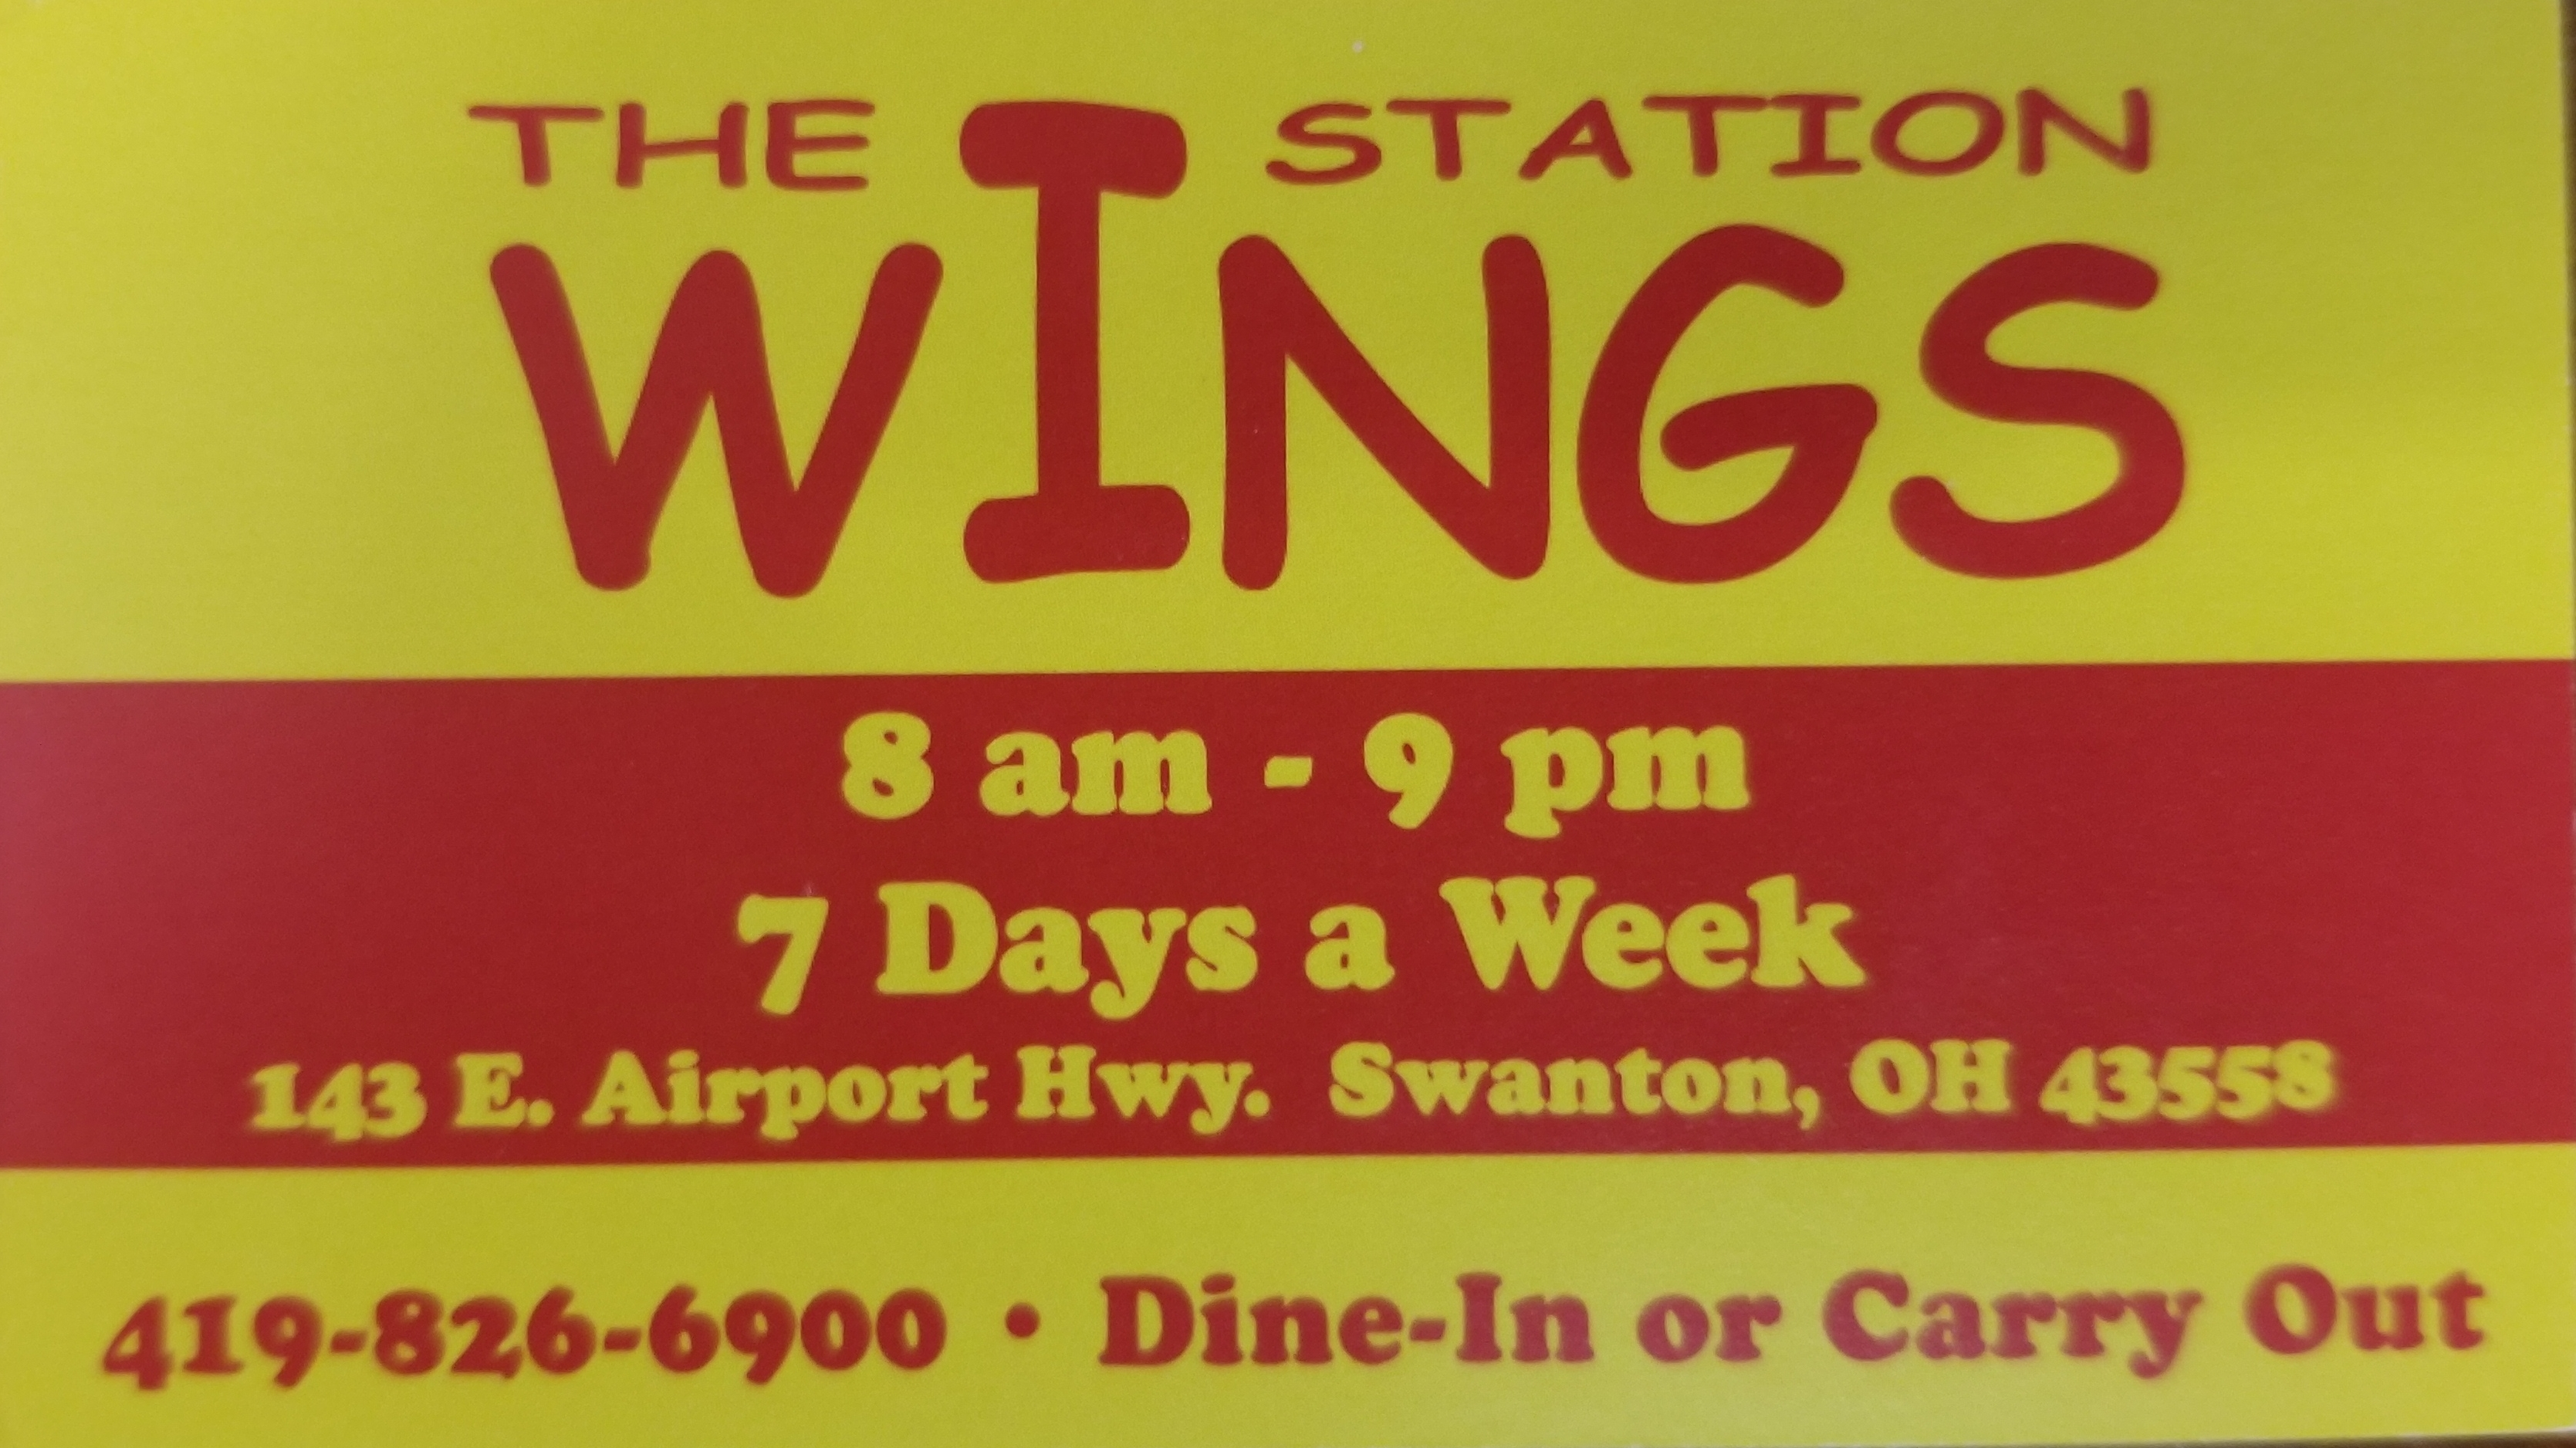 The Wings Station